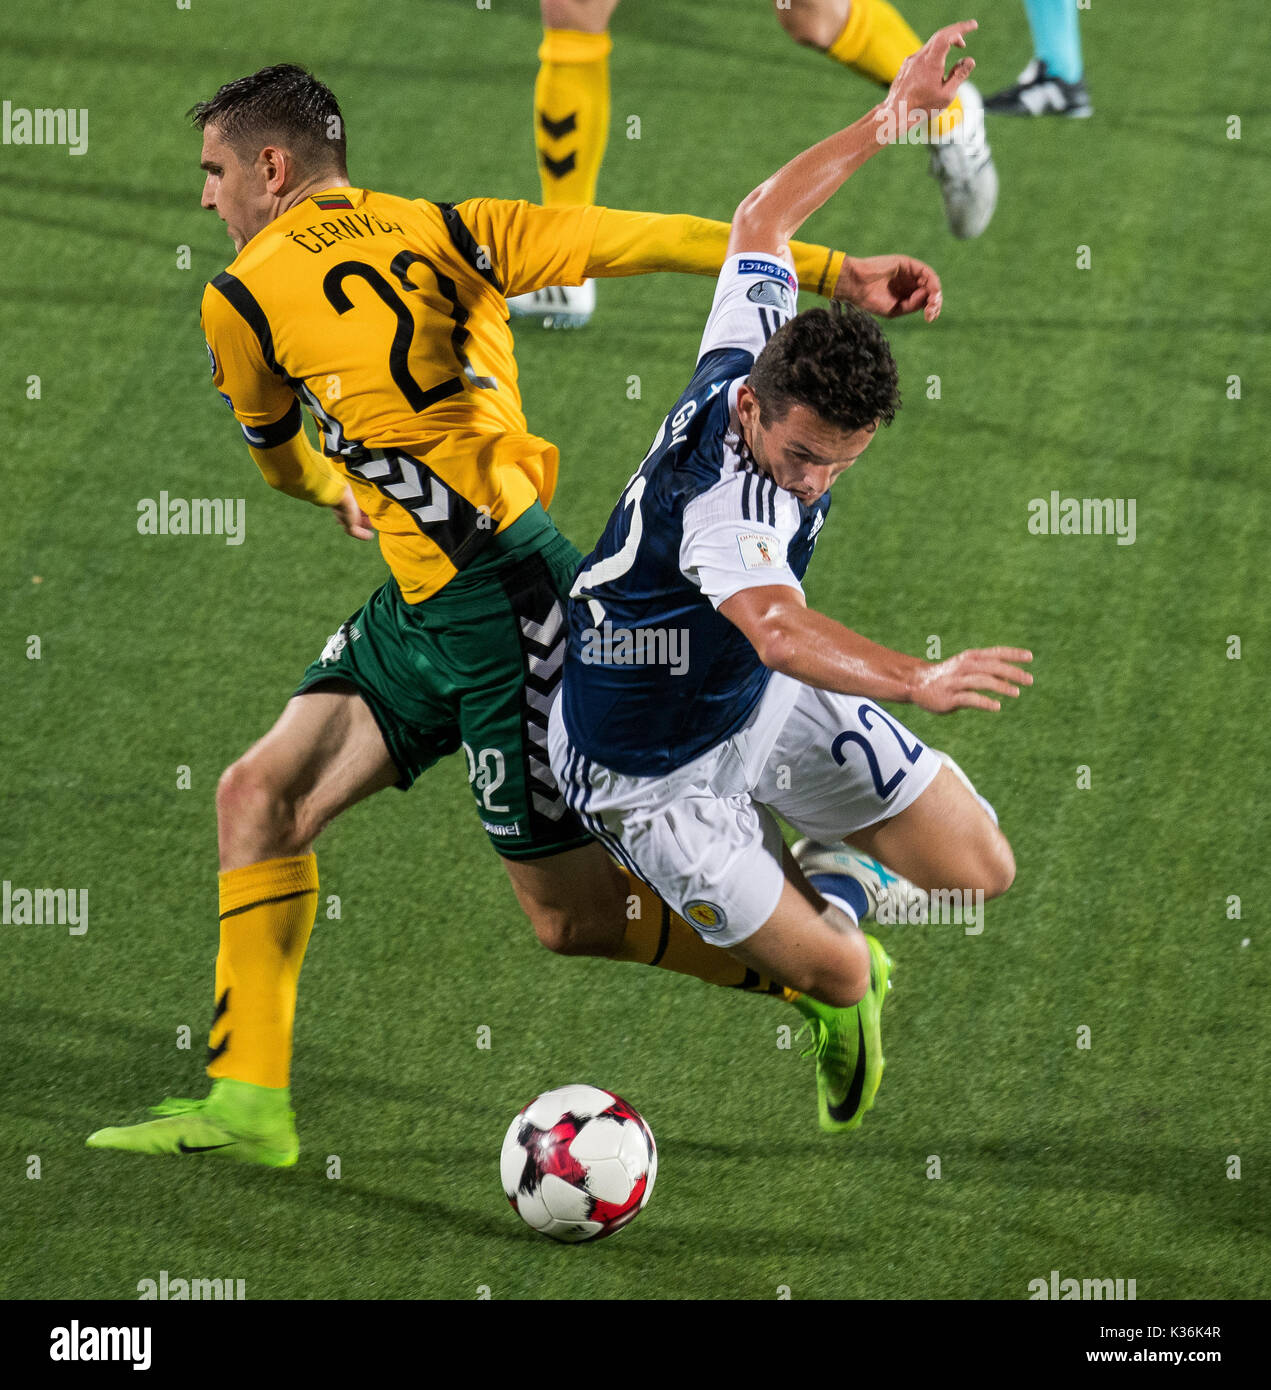 1st Sep 2017 John Mcginn R Of Scotland Vies With Fiodor Cernych Lithuania During The Fifa World Cup European Qualifying Group F Match Between